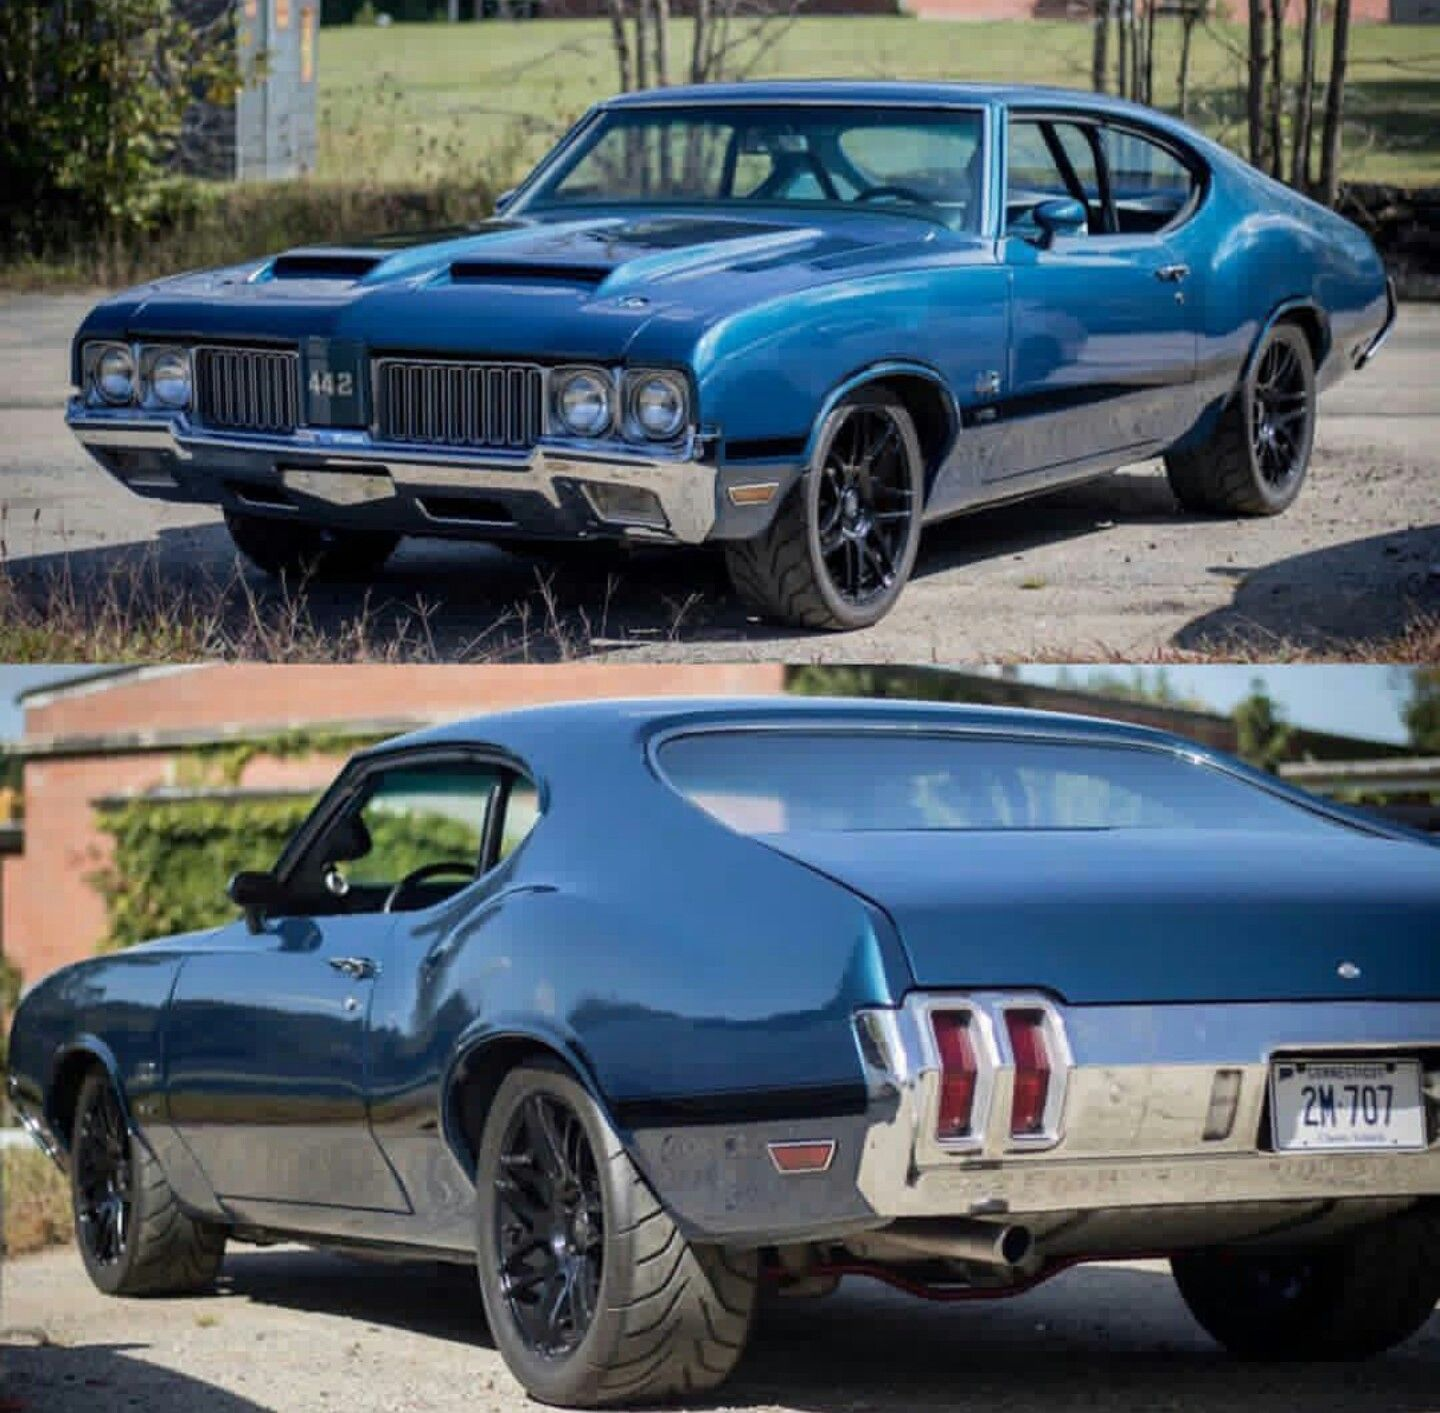 70 Oldsmobile 442 With Images Muscle Cars Oldsmobile 442